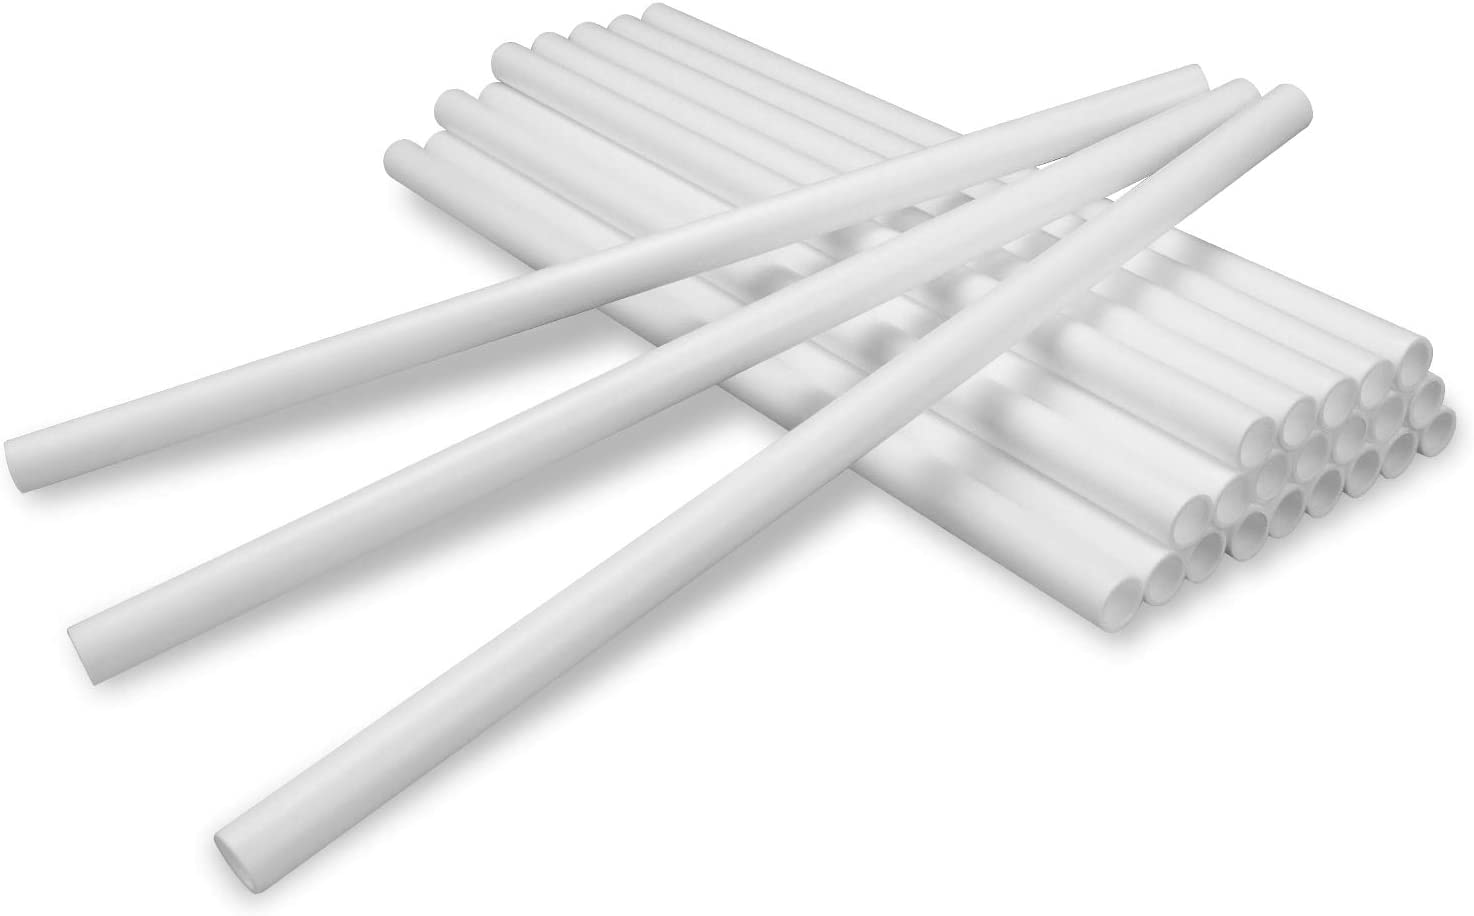 24 Pieces Plastic White Cake Dowel Rods for Tiered Cake Construction and Stacking Supporting Cake Round Dowels Straws with 0.4 Inch Diameter 9.5 Inch Length By lsshao